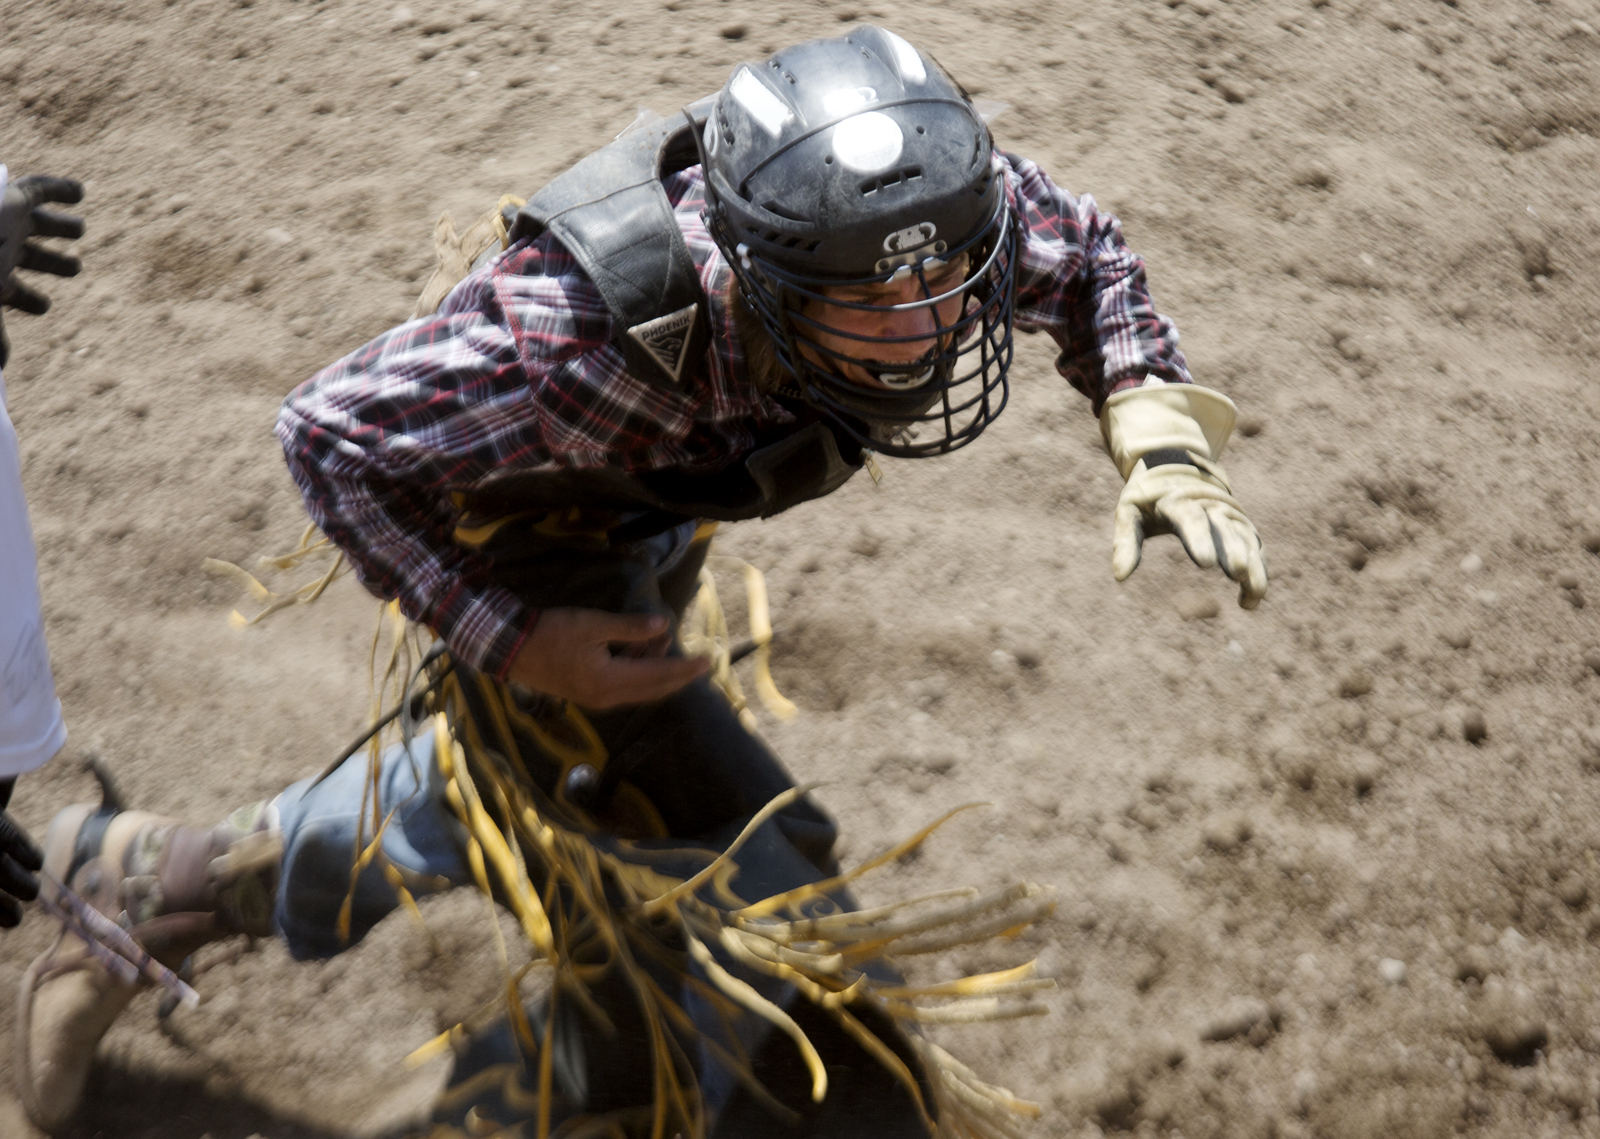 Colton Kent clutches his abdomen and runs towards the fence after his run in Little Britches Senior Bull Riding competition Friday, July 26 2013 at the Pueblo State Fairgrounds. Kent fell off before the eight second buzzer, and was stepped on by his bull.